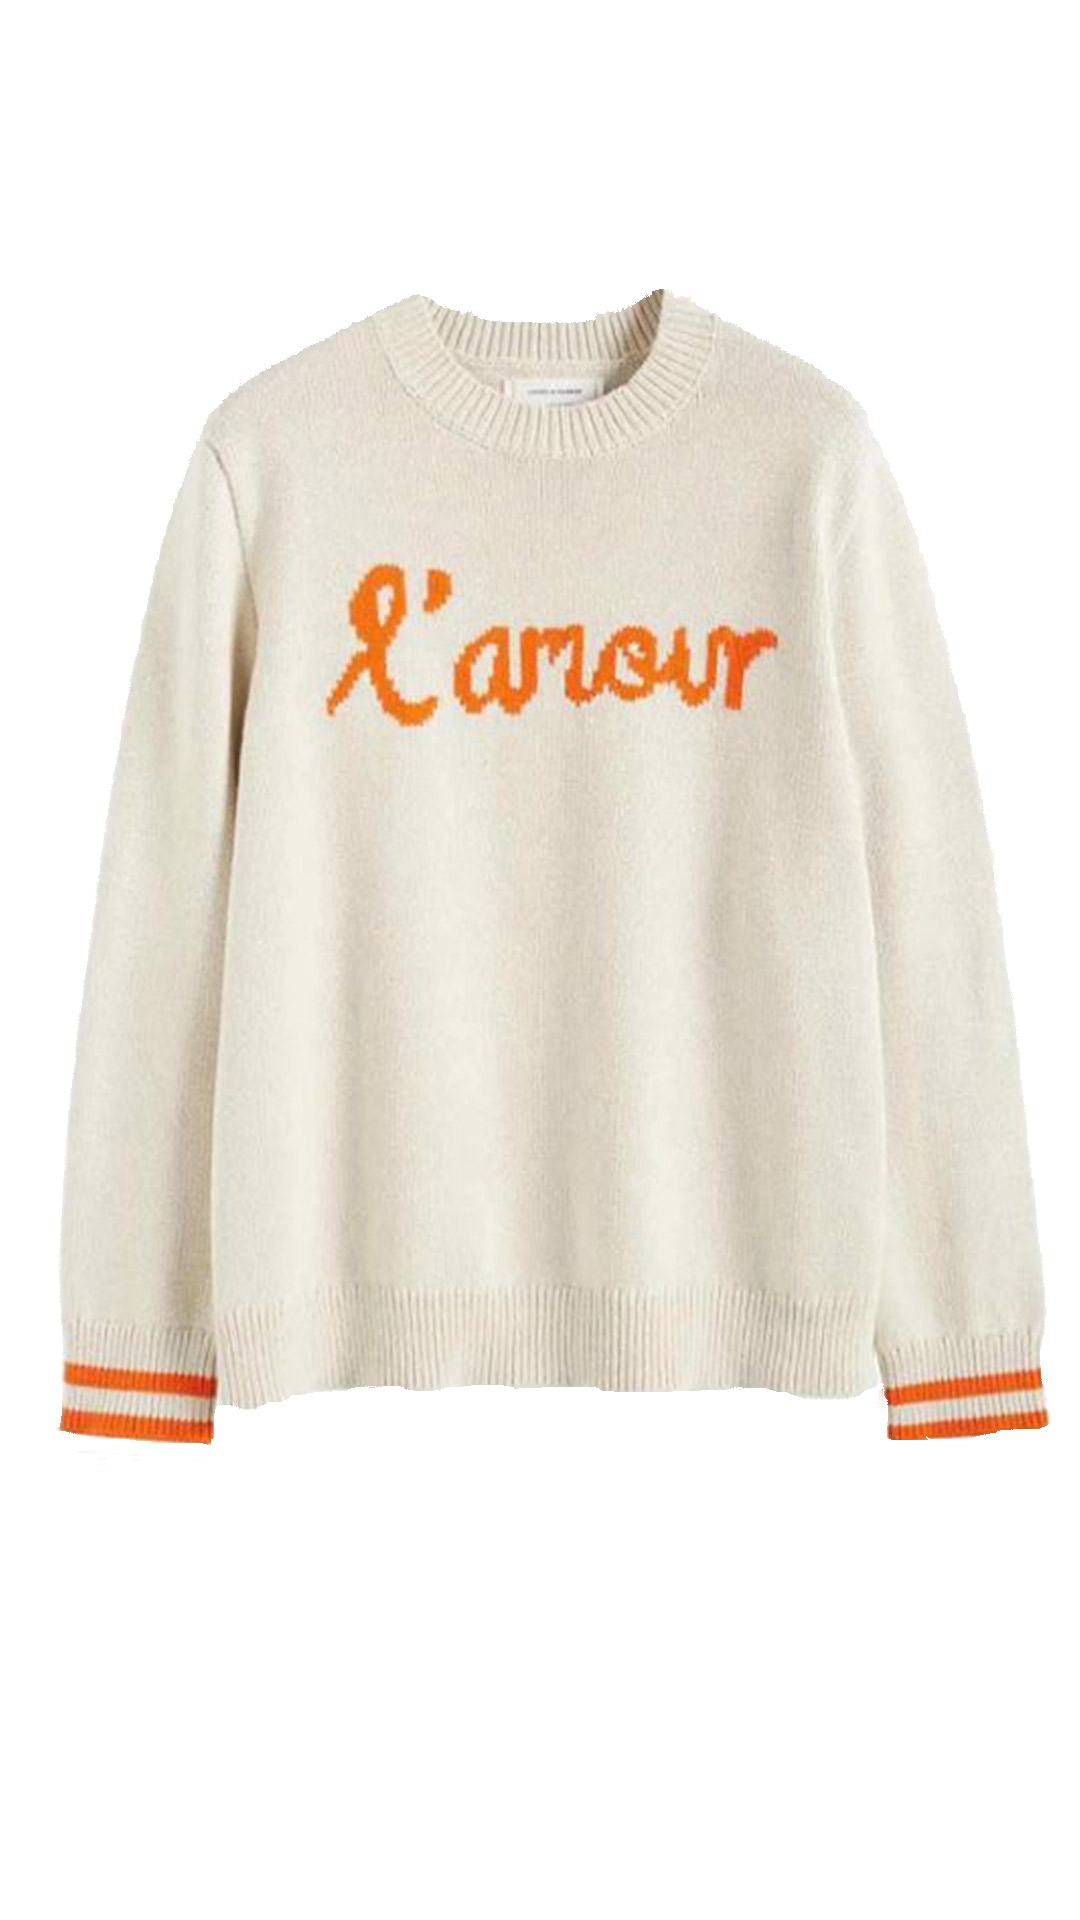 CHINTI & PARKER L'amour Sweater